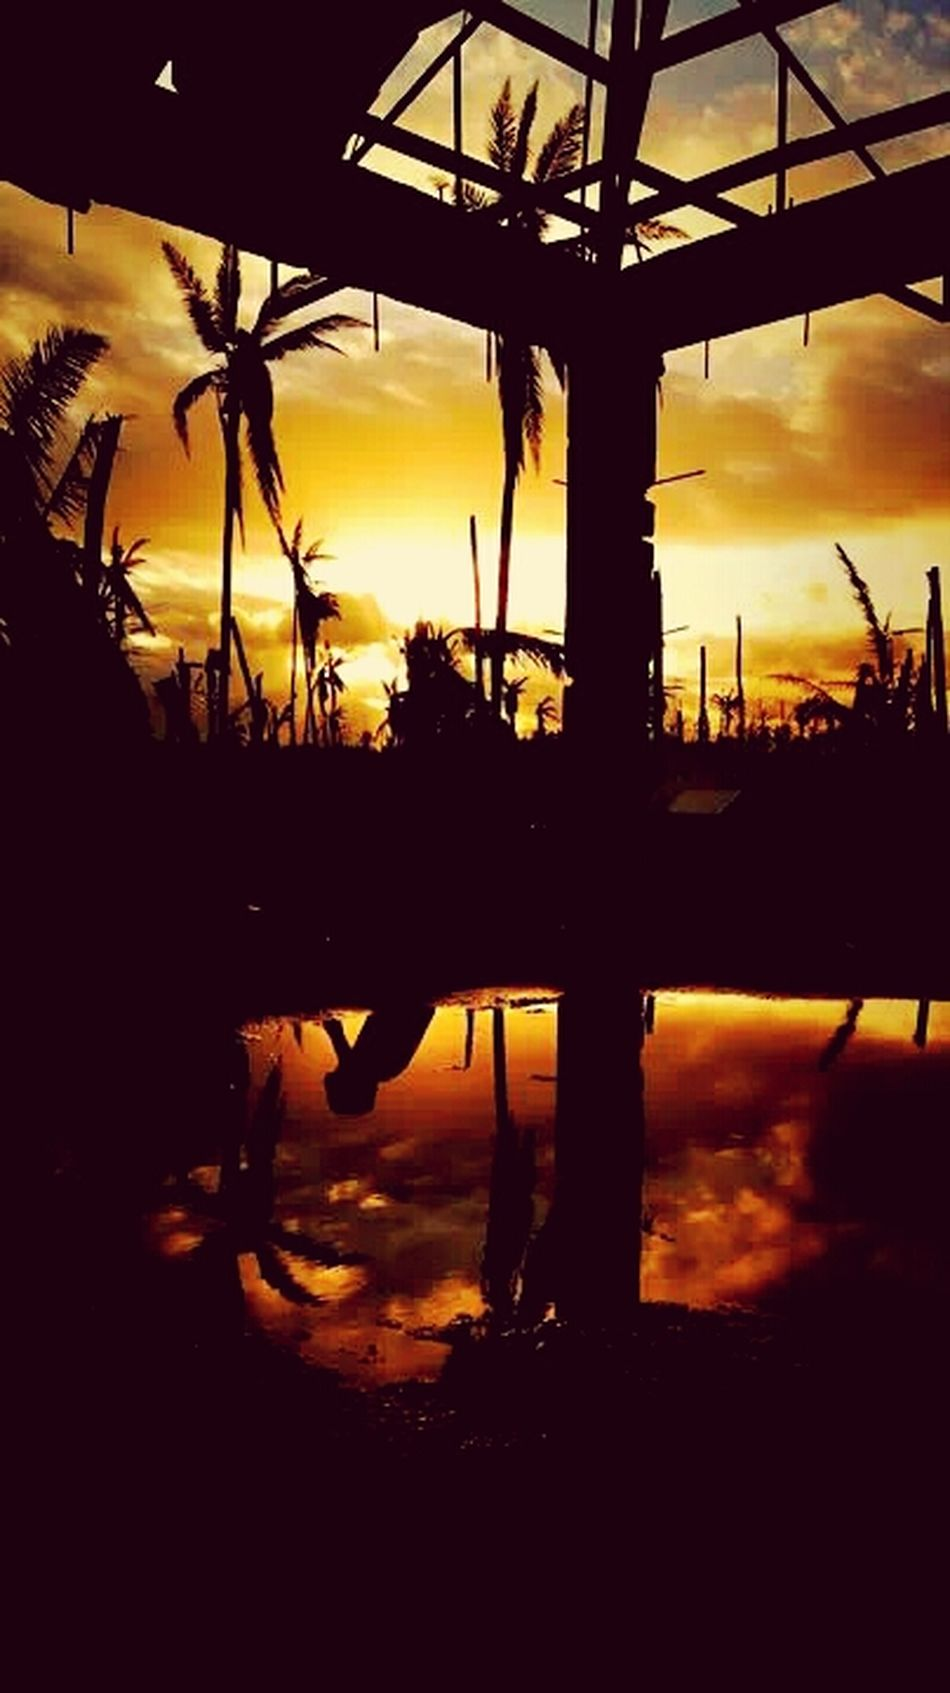 Philipines, Leyte. Dusk view from a distroyed country Batug. the feeling from being there and seeing the beauty of Nature. A child sitting there looking how volunteers rebuild a garden for the village. Visual Statements Your Photo For Social Change By PhotoPhilanthropy